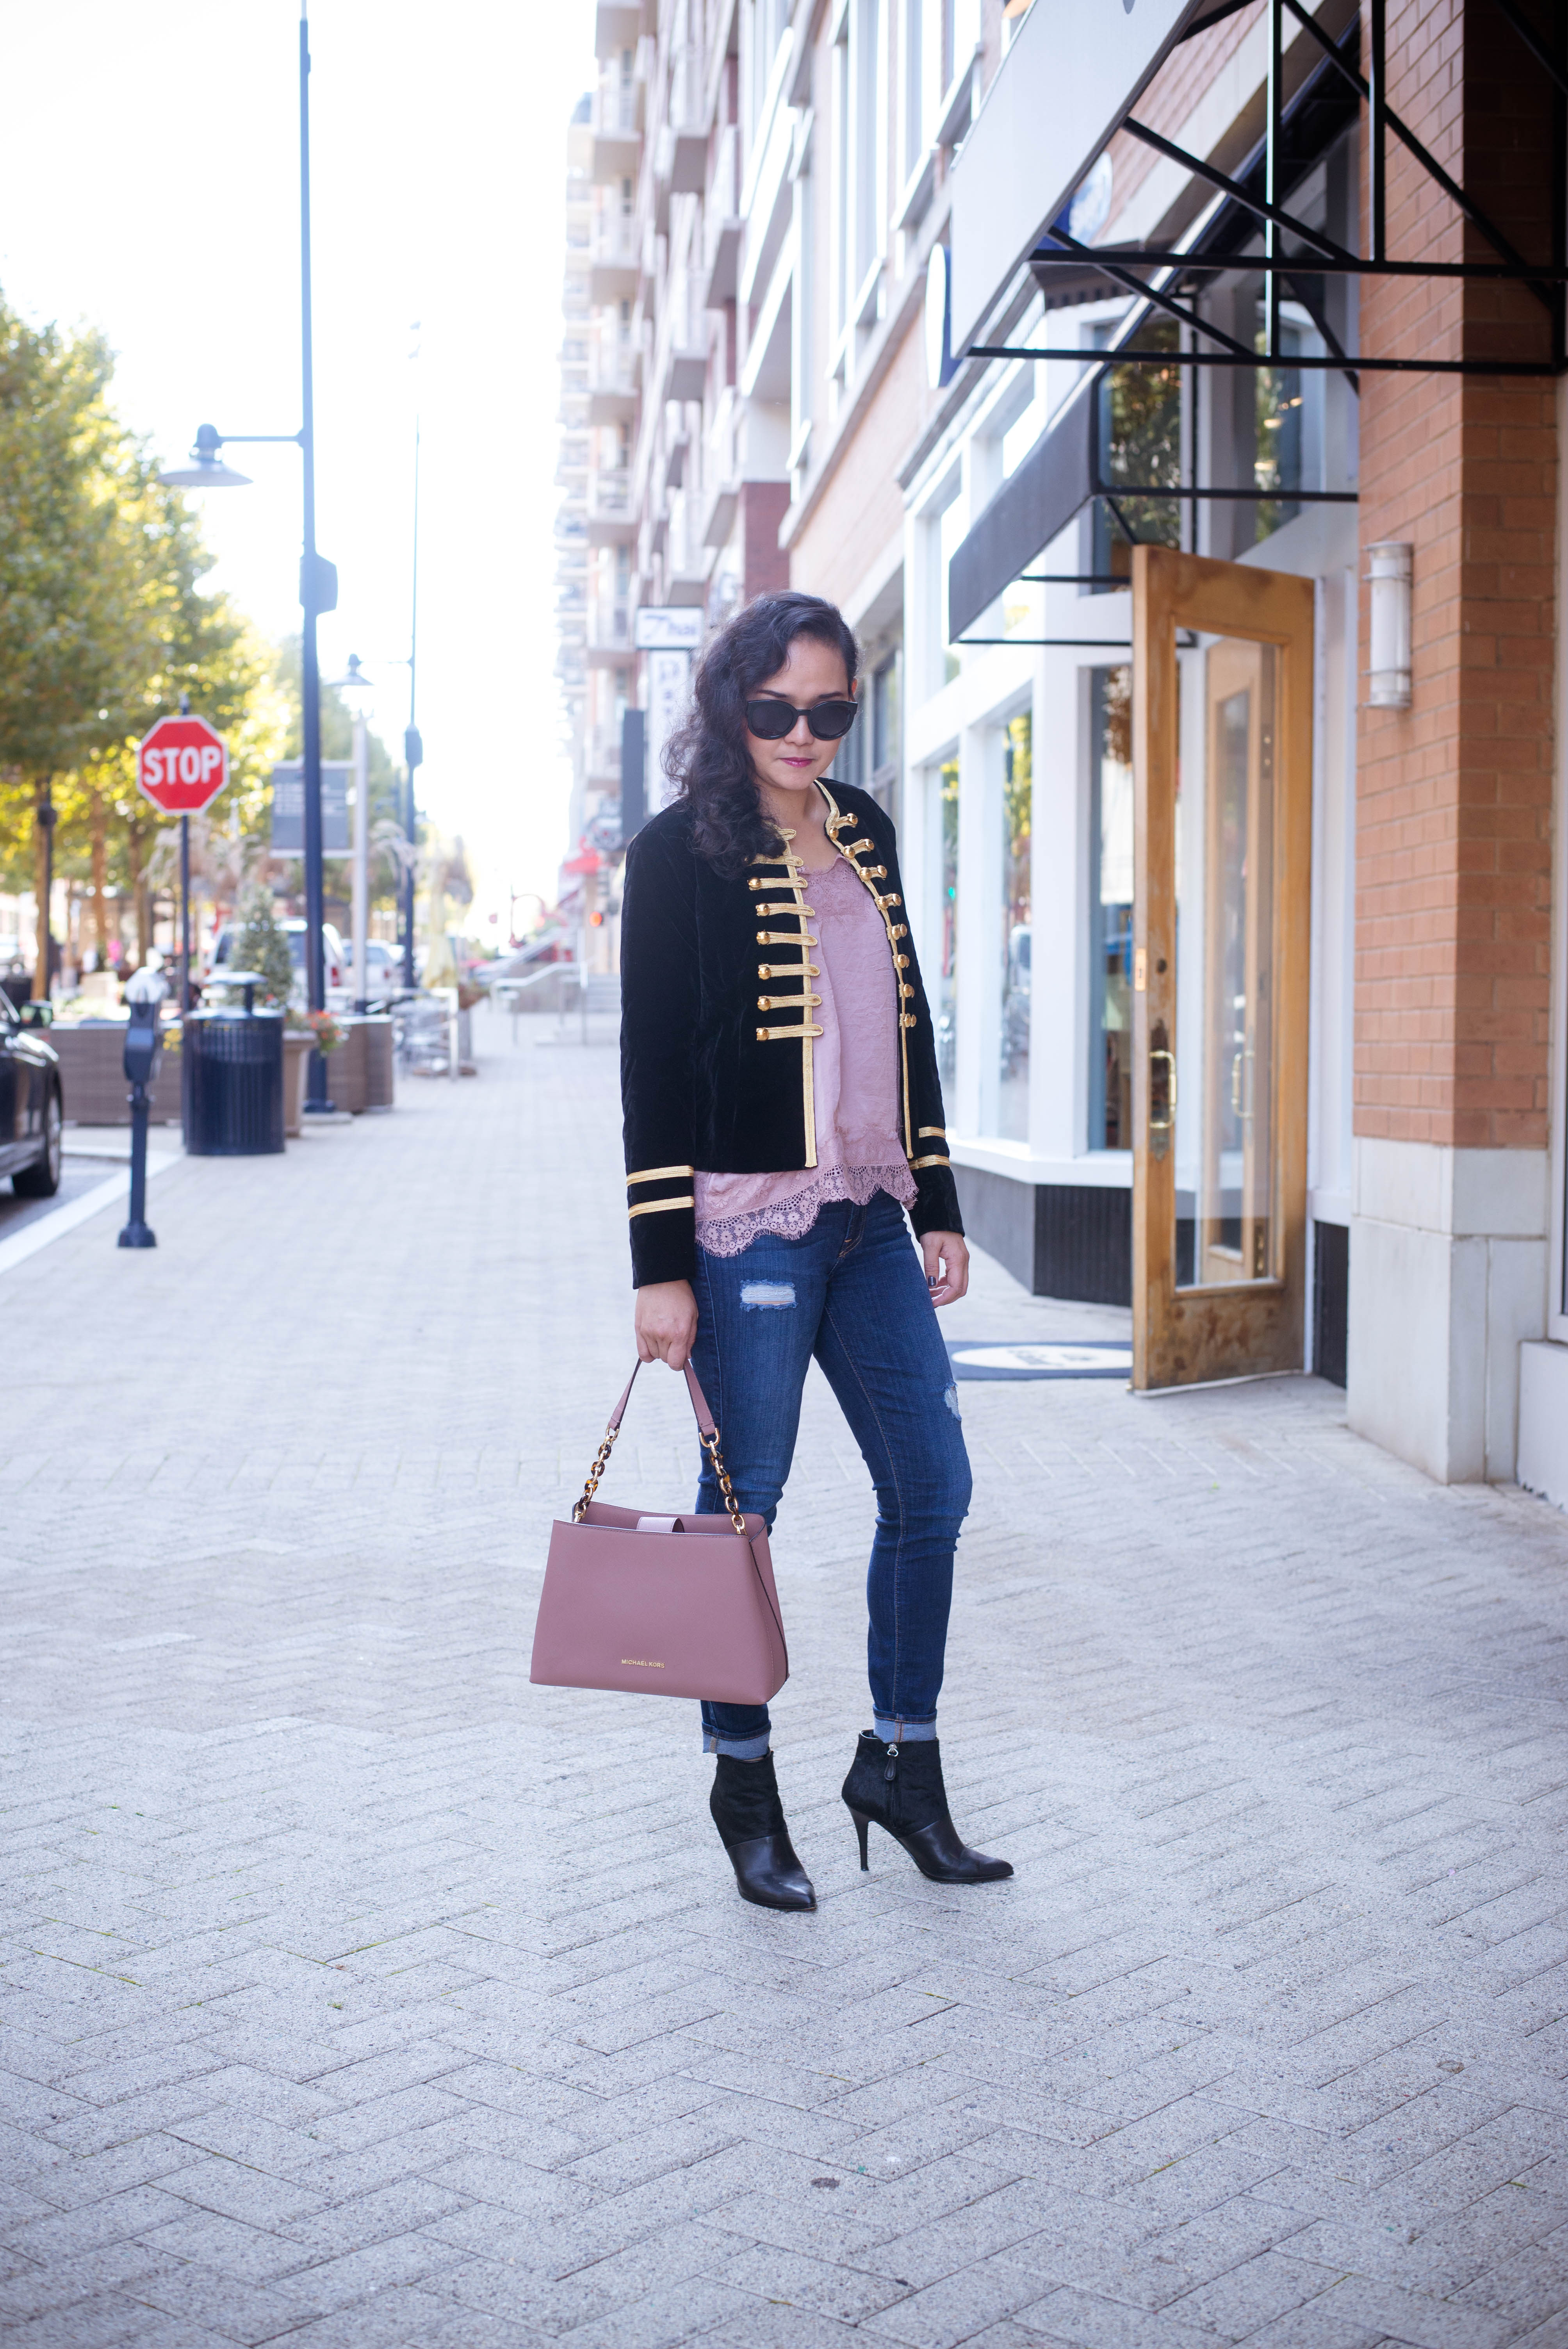 Monday Style: In Military Jacket